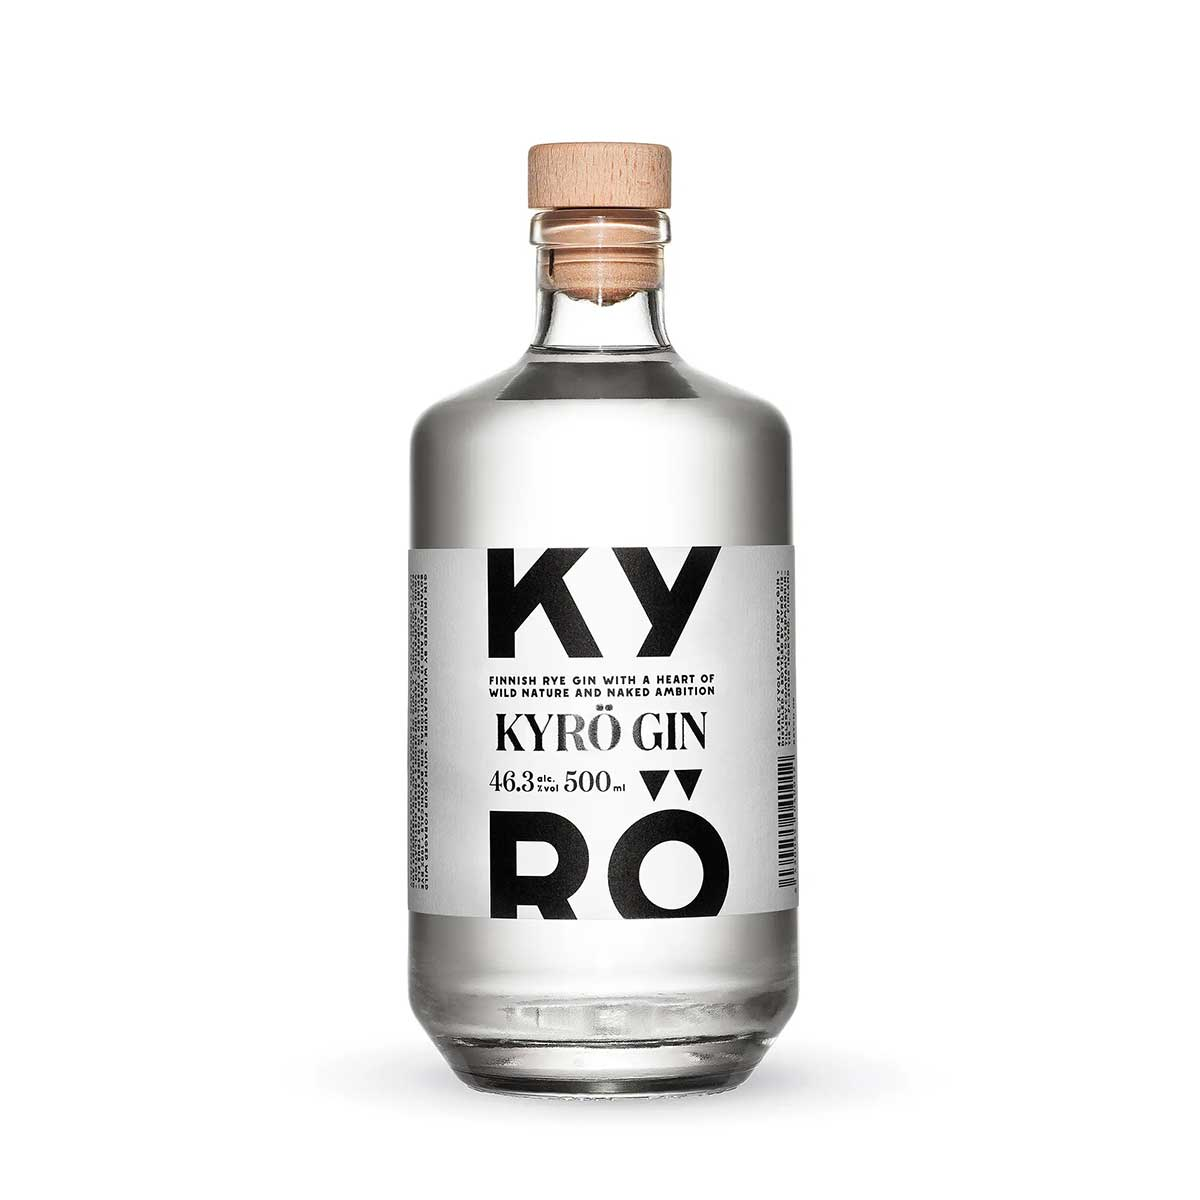 Kyro Gin Bottle 2020 from Kyro Distillery